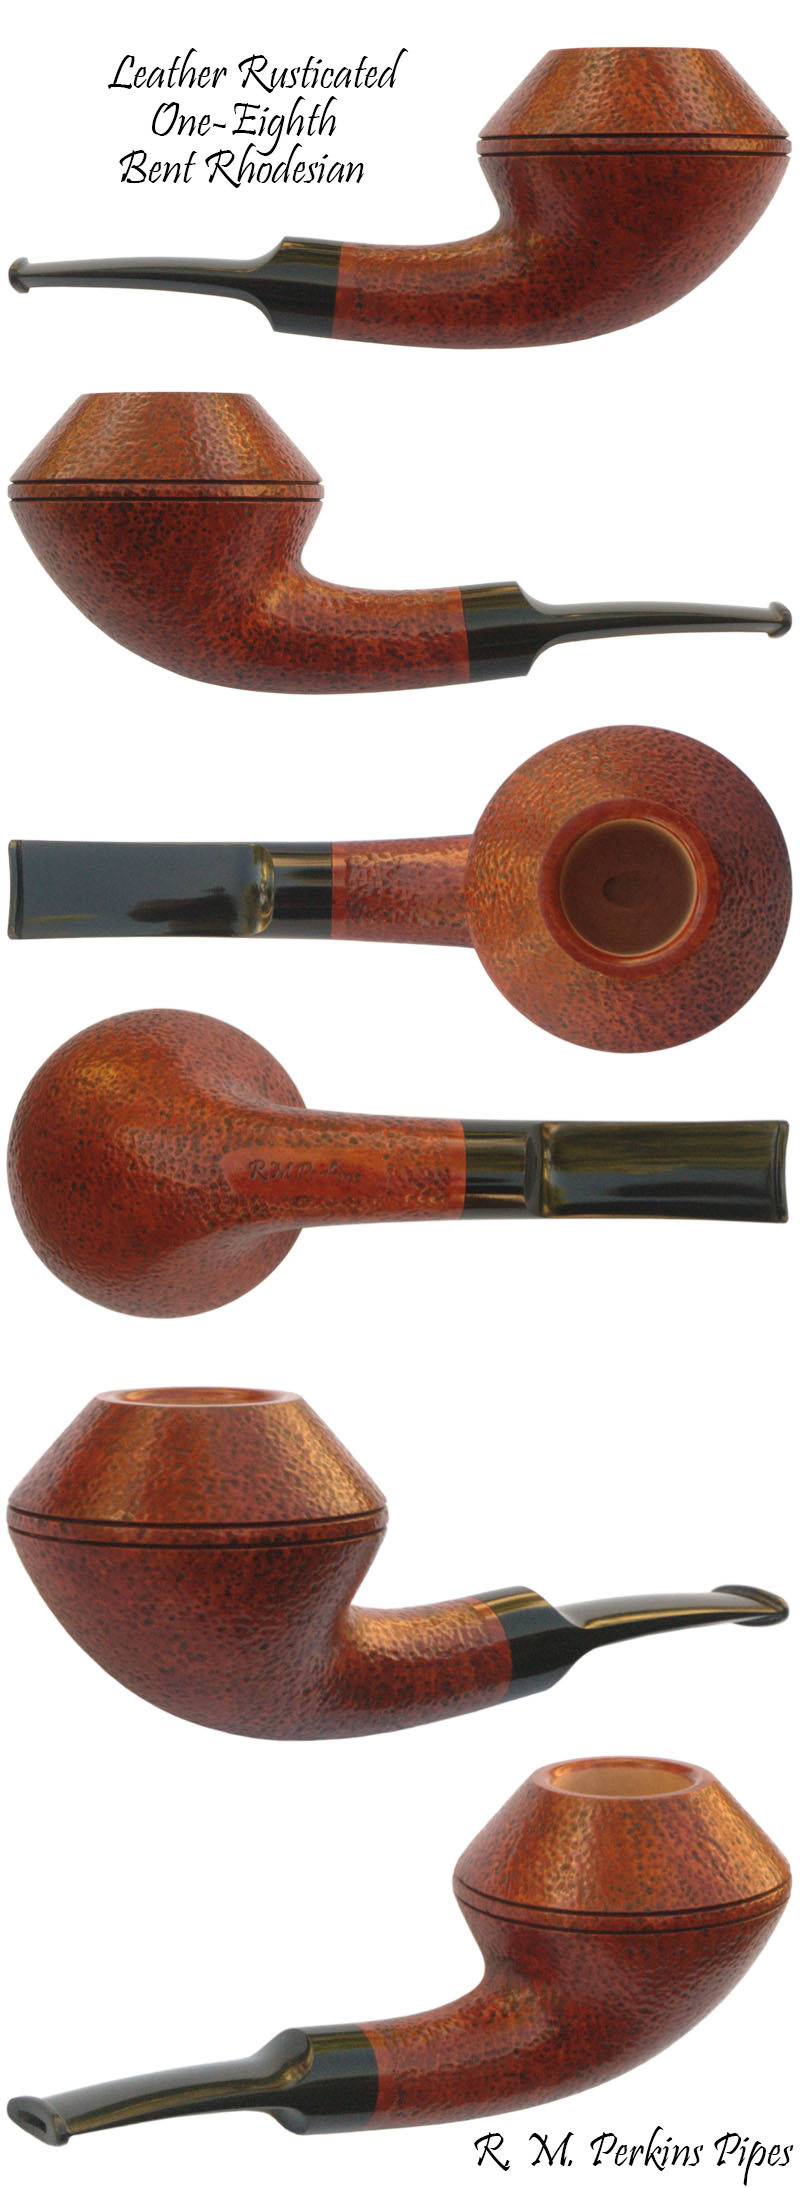 Leather Rusticated 1/8 Bent Rhodesian Smoking Pipe